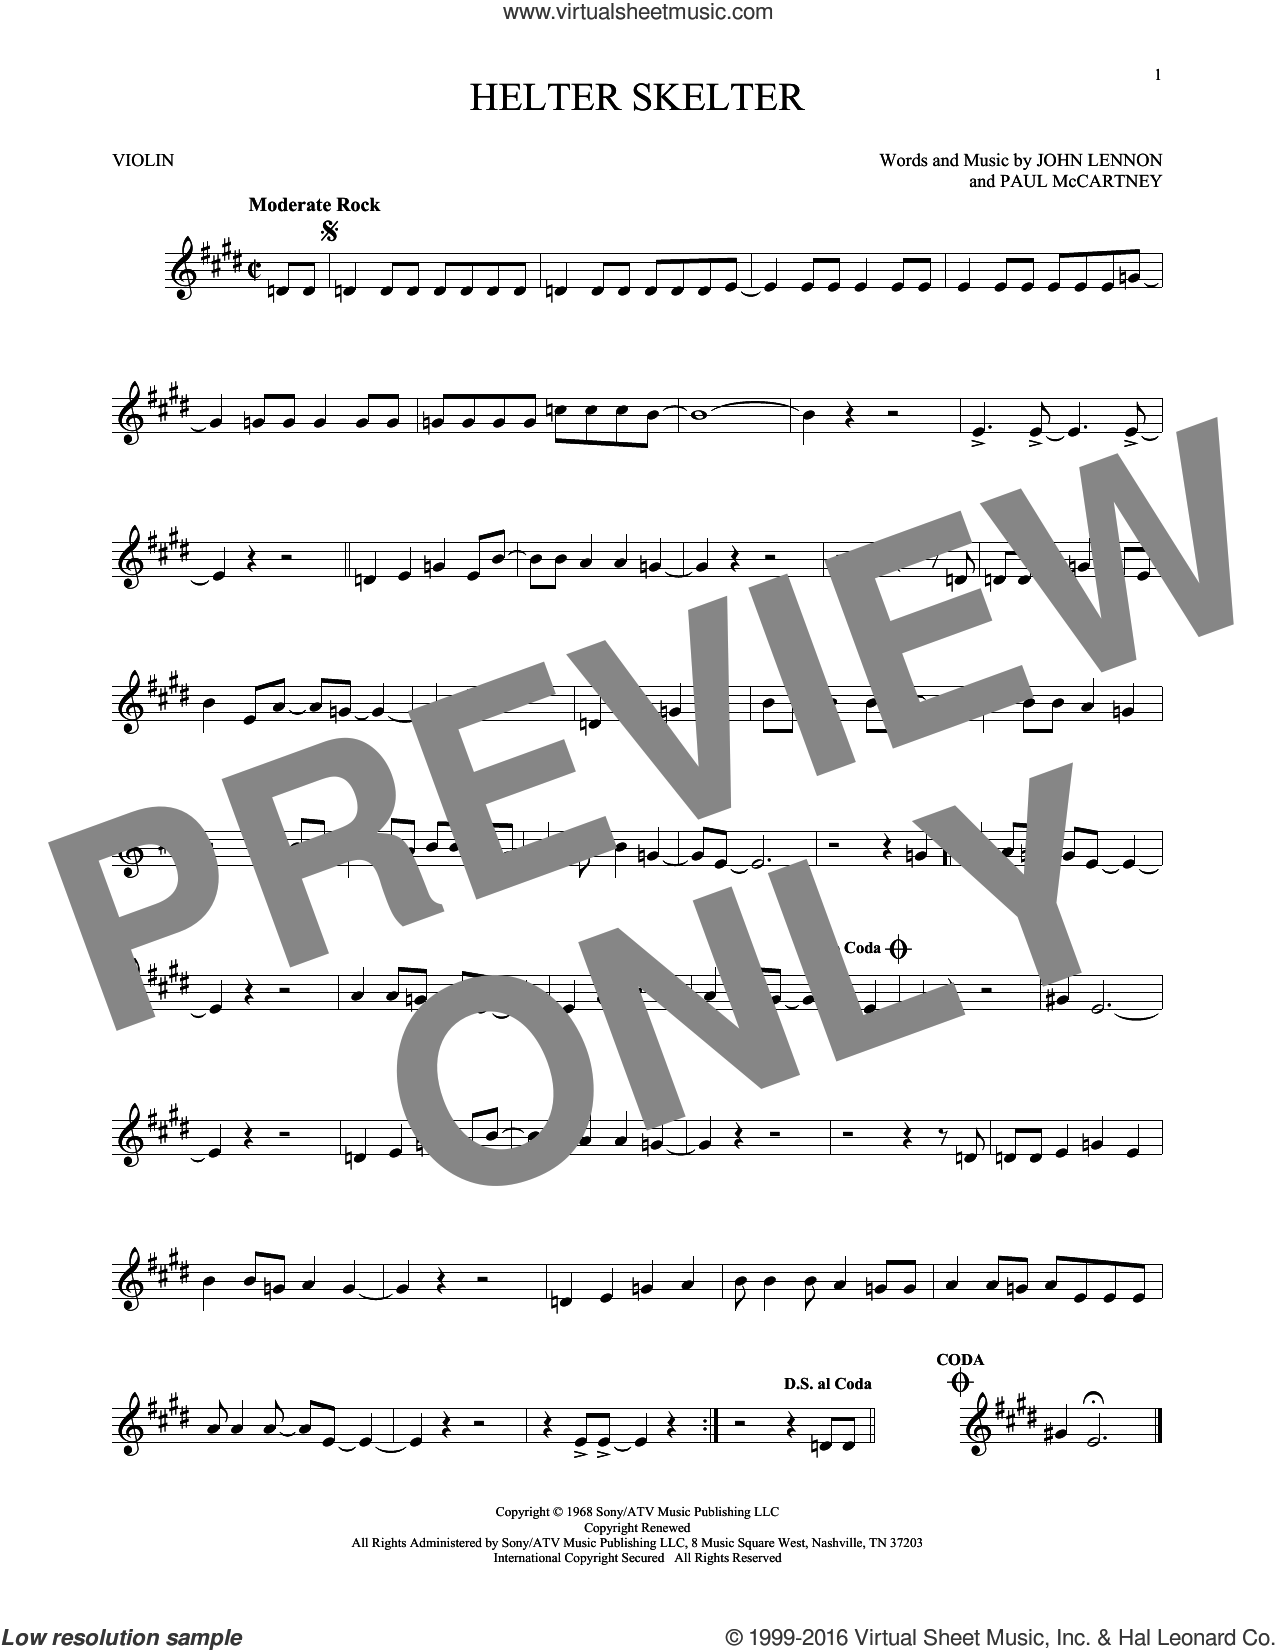 Helter Skelter sheet music for violin solo by Paul McCartney